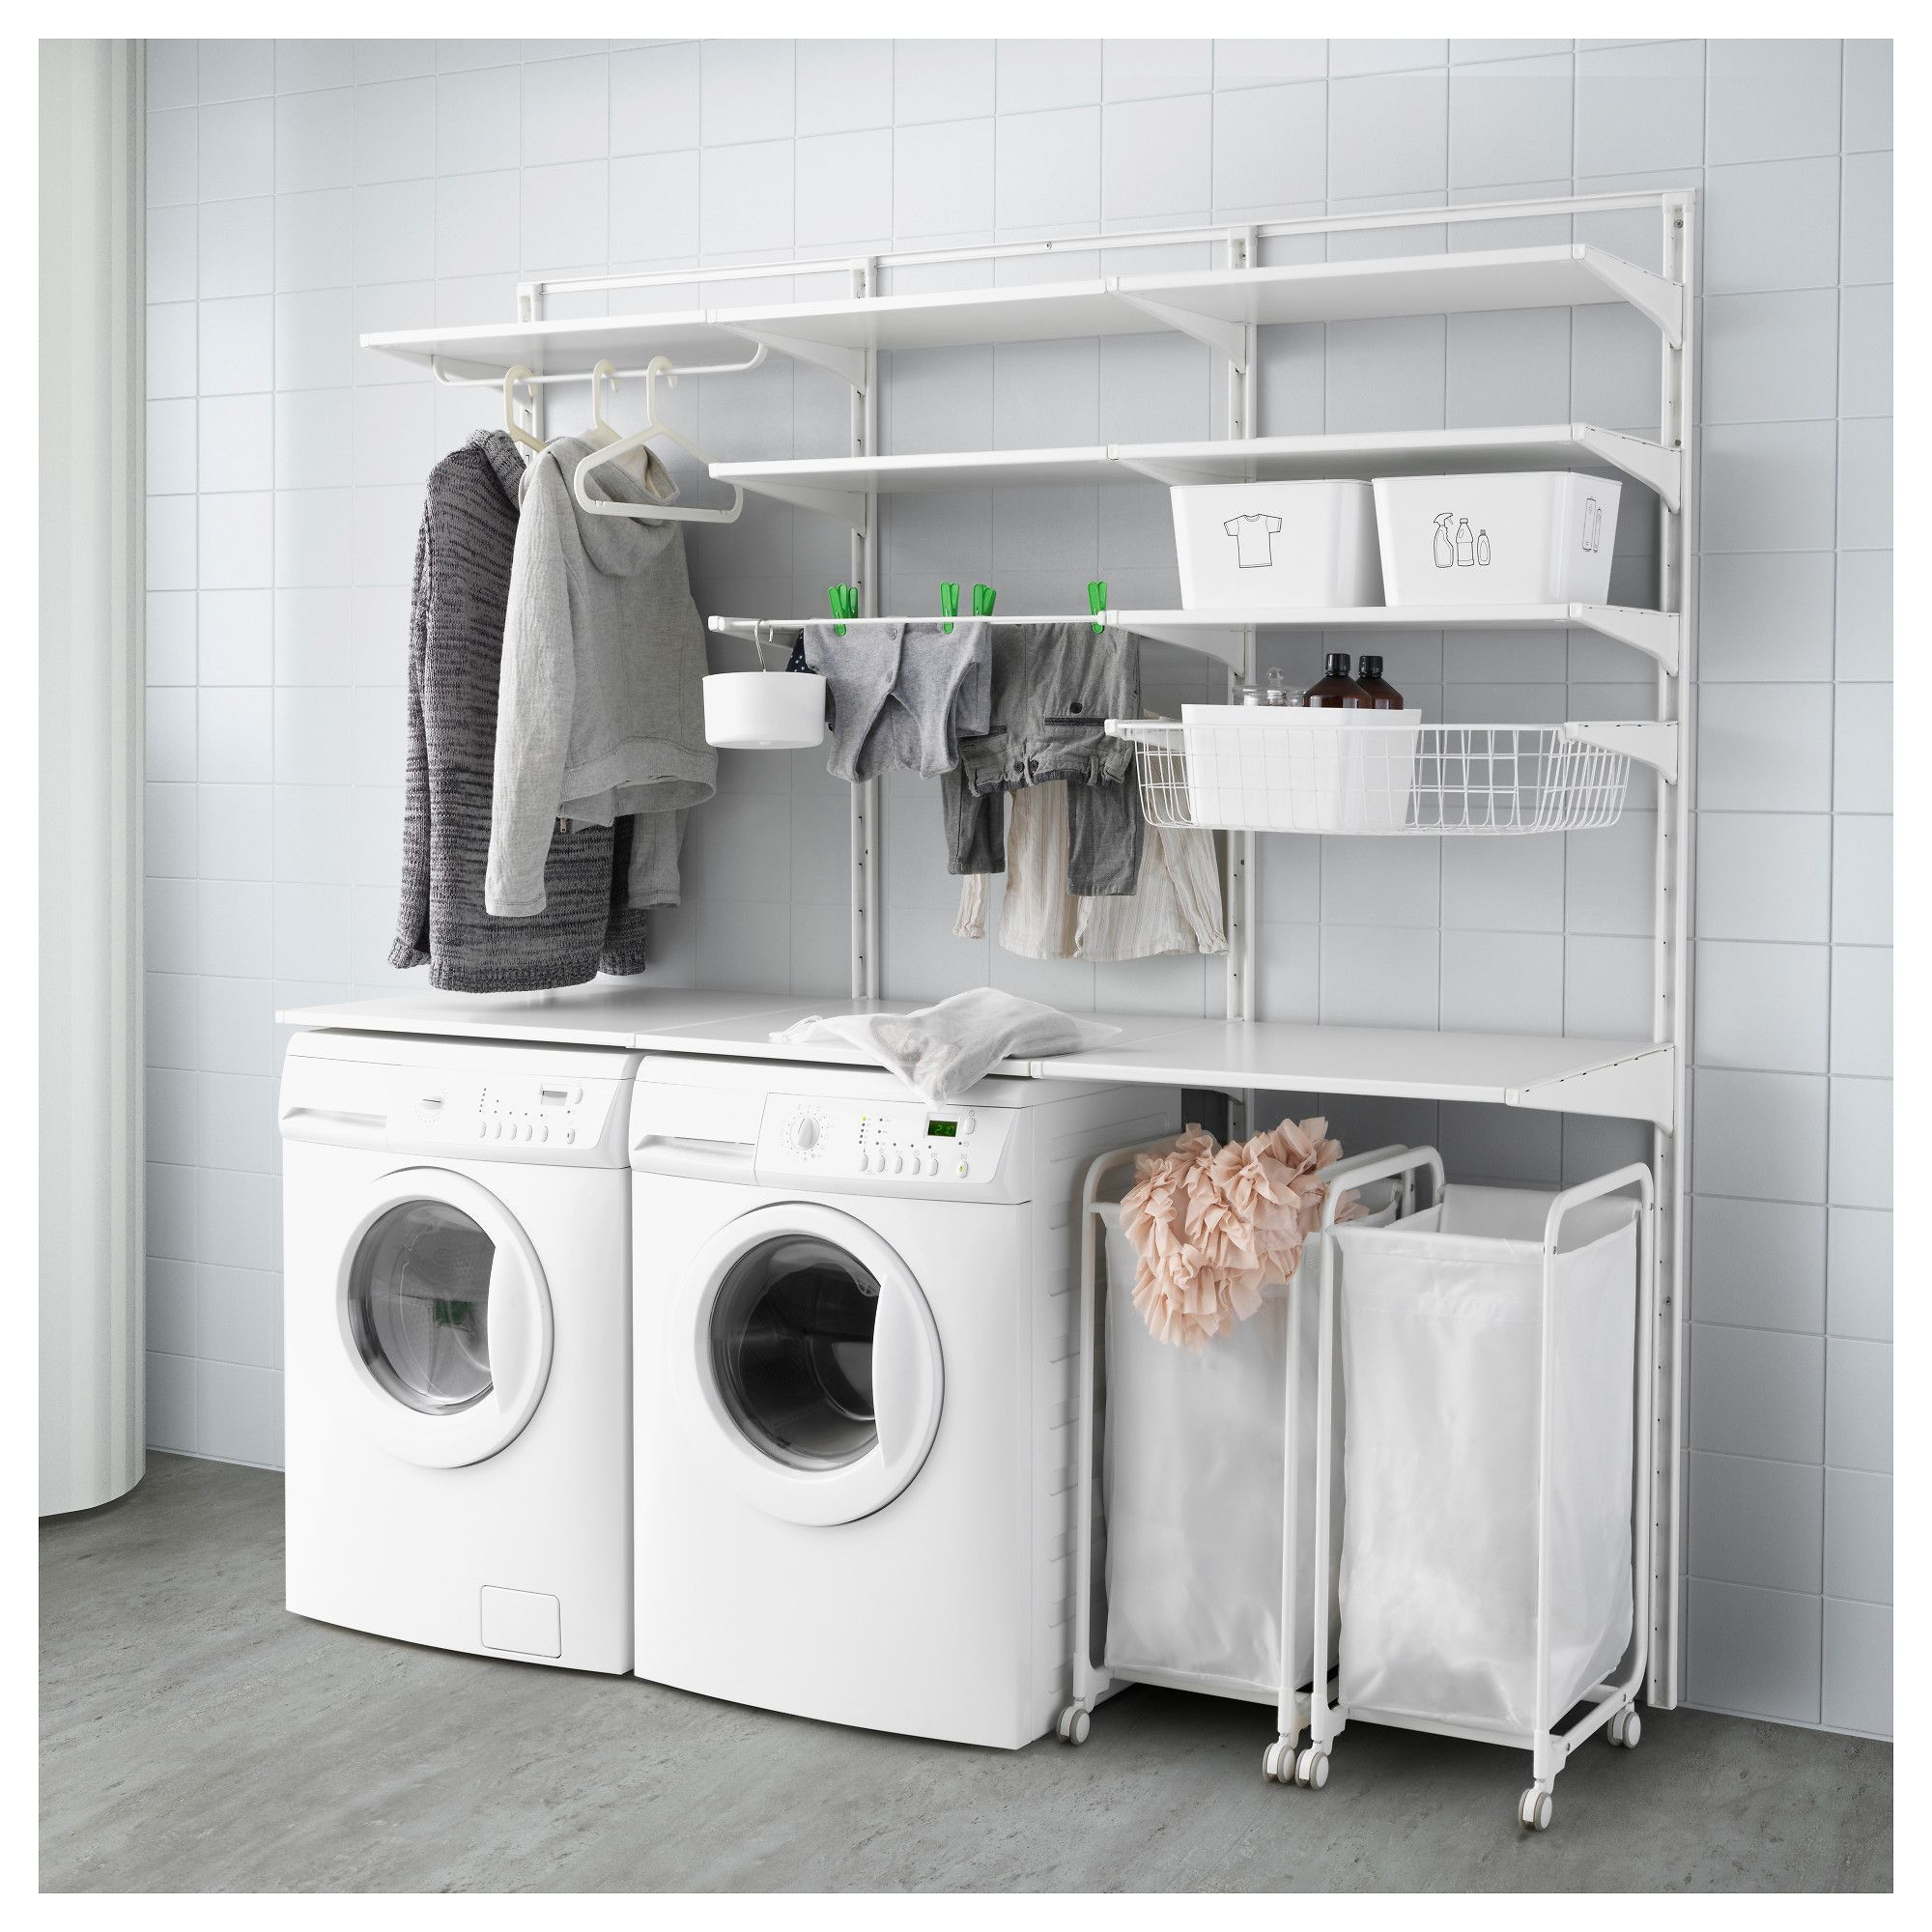 Exquisite Ikea Algot System For Your Storage Needs Astounding